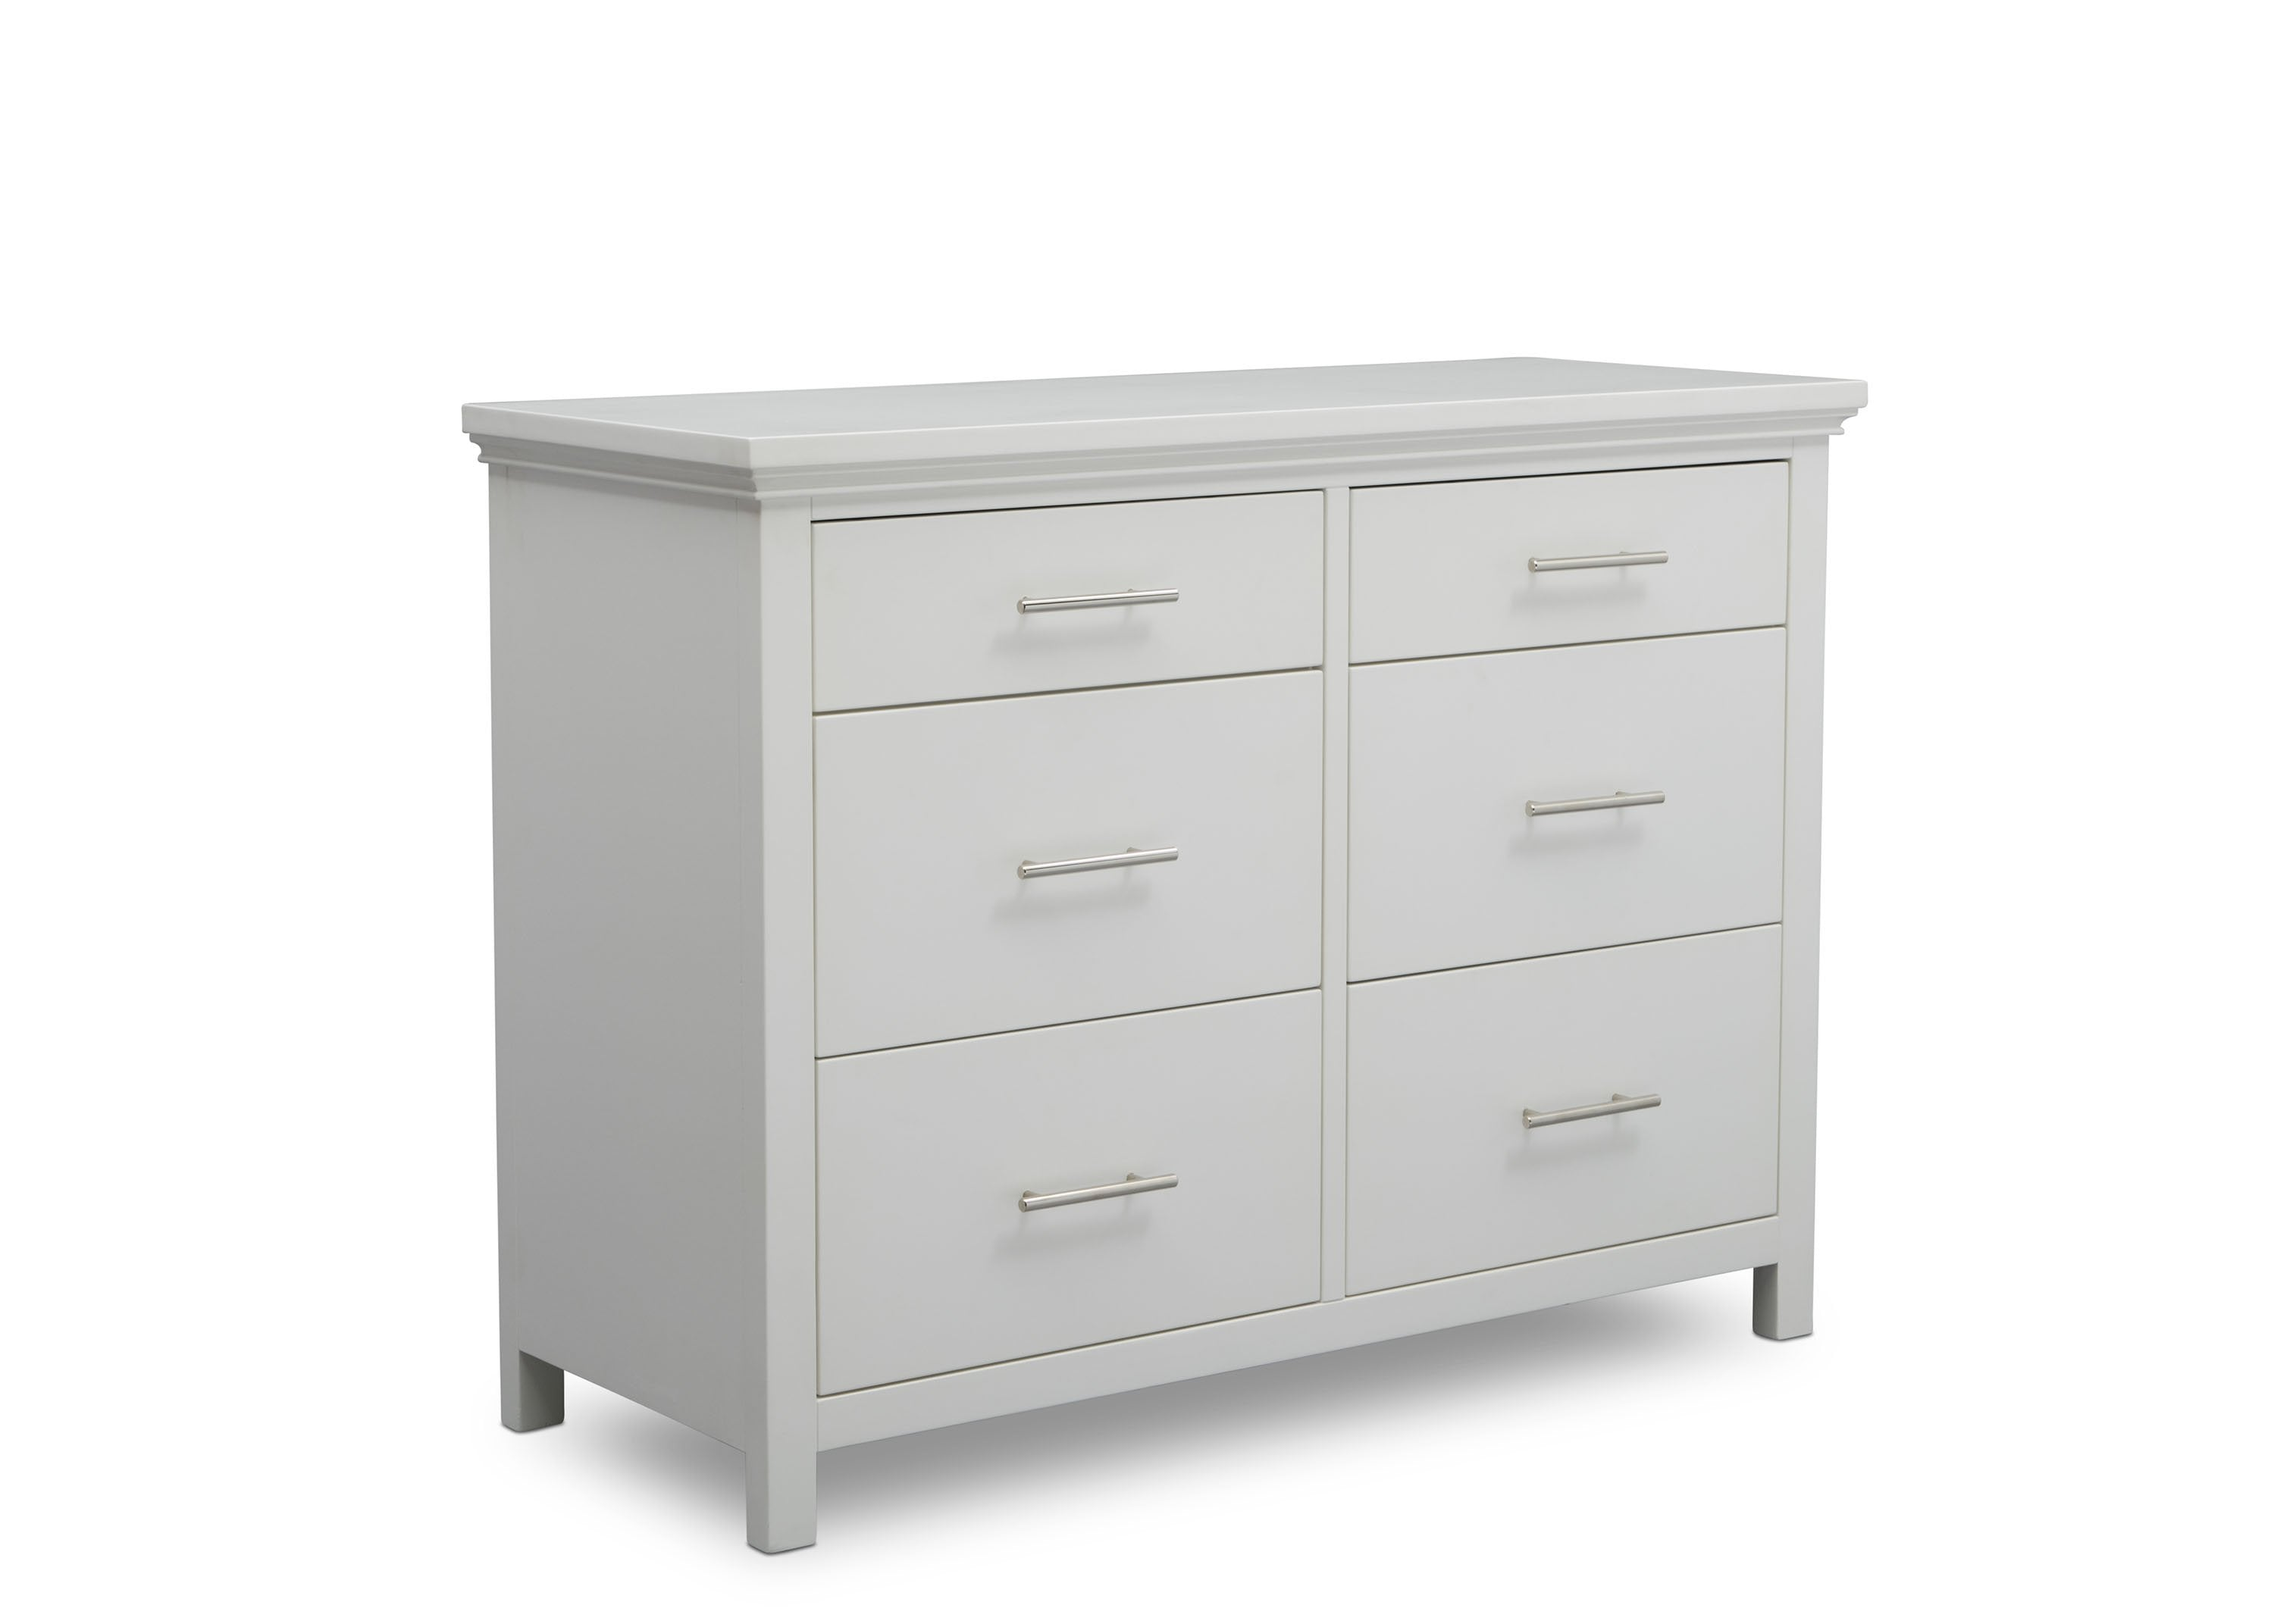 a for of dressers sale dresse up unique black stand storage with vertical drawer less long to cheap chest wide where tall inch wood short drawers white sets dresser buy large lots bedroom